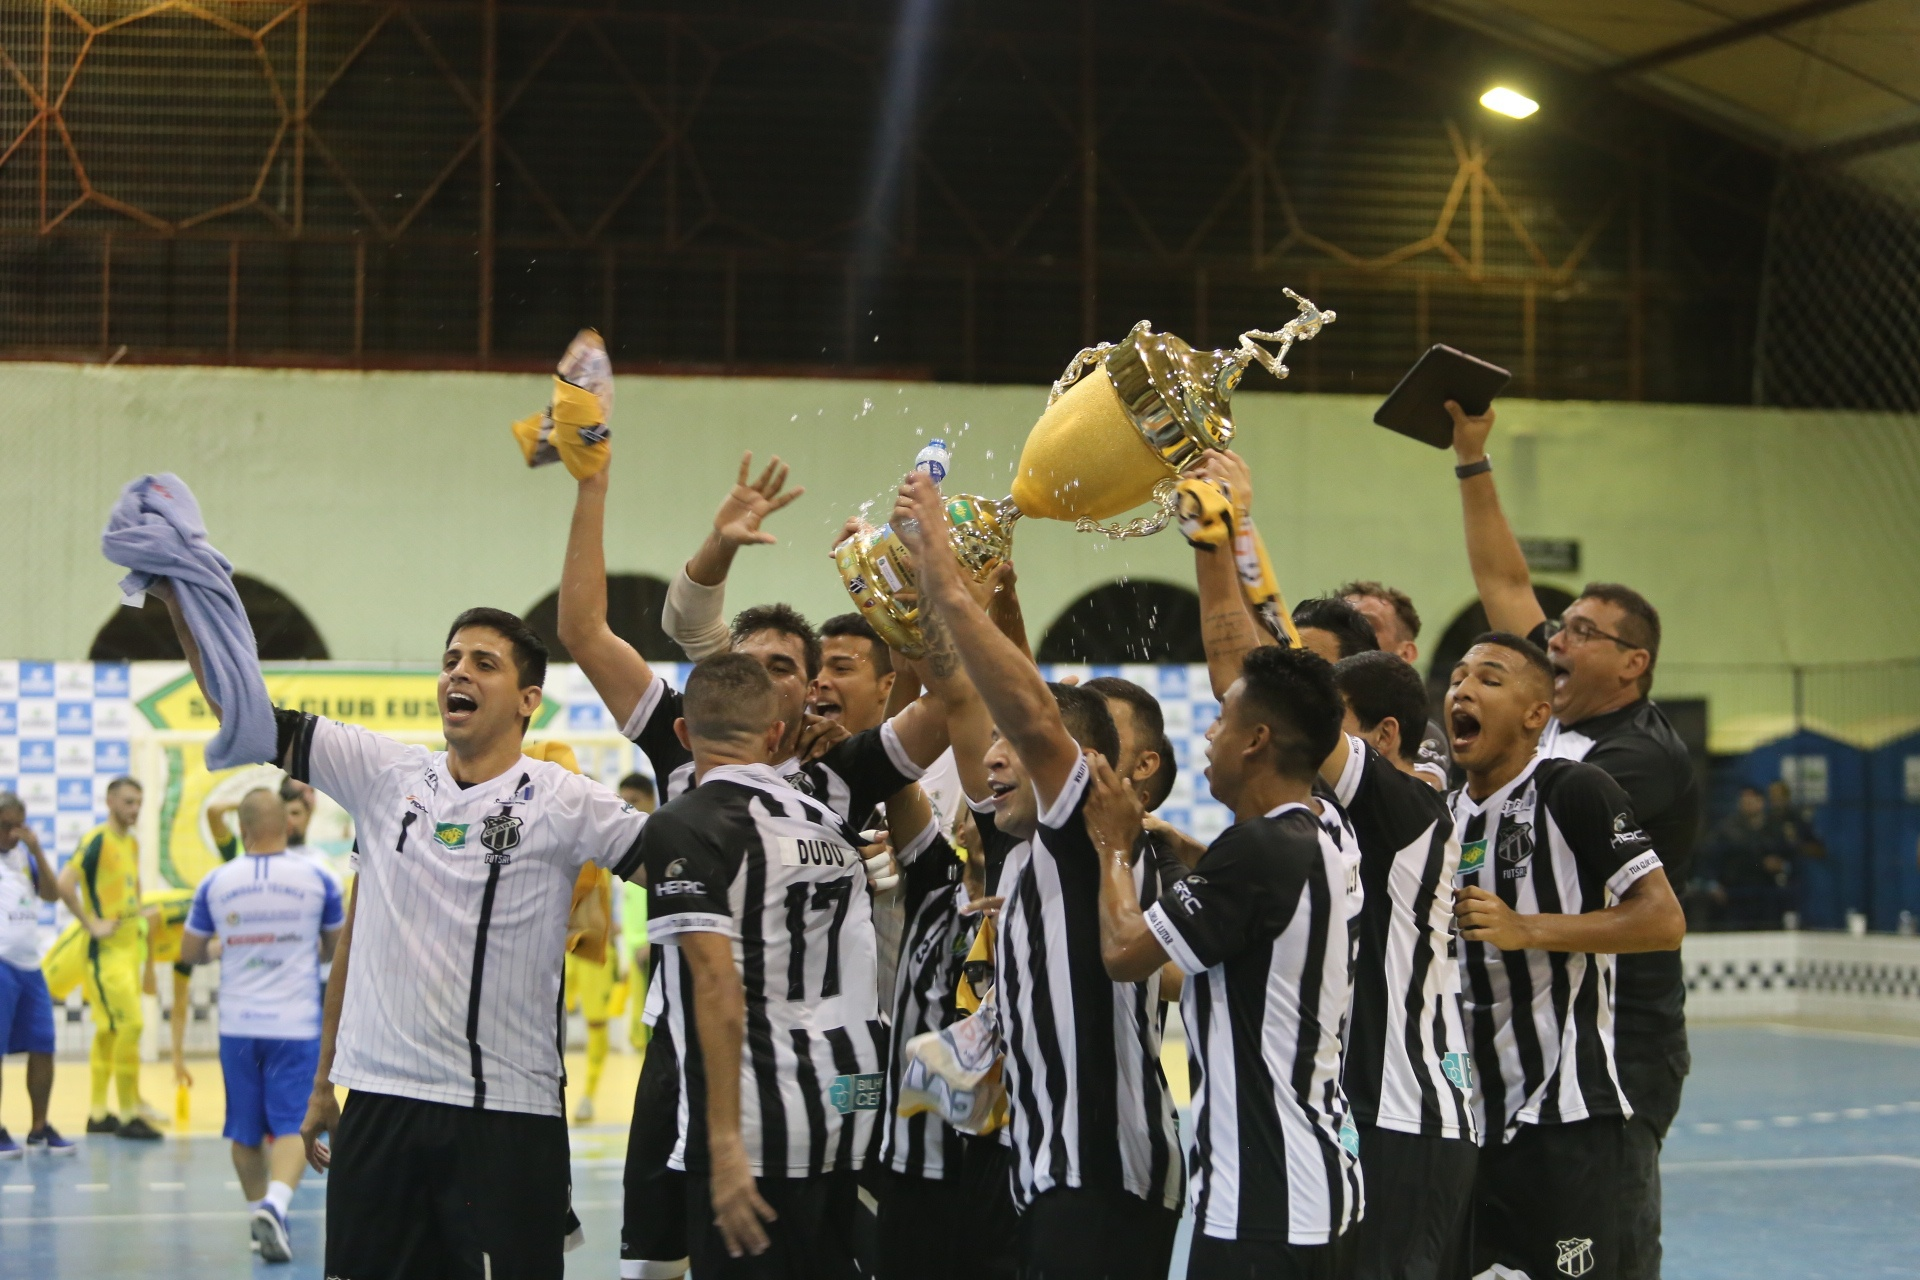 Futsal Adulto: FCFS divulga regulamento do Campeonato Cearense 2020